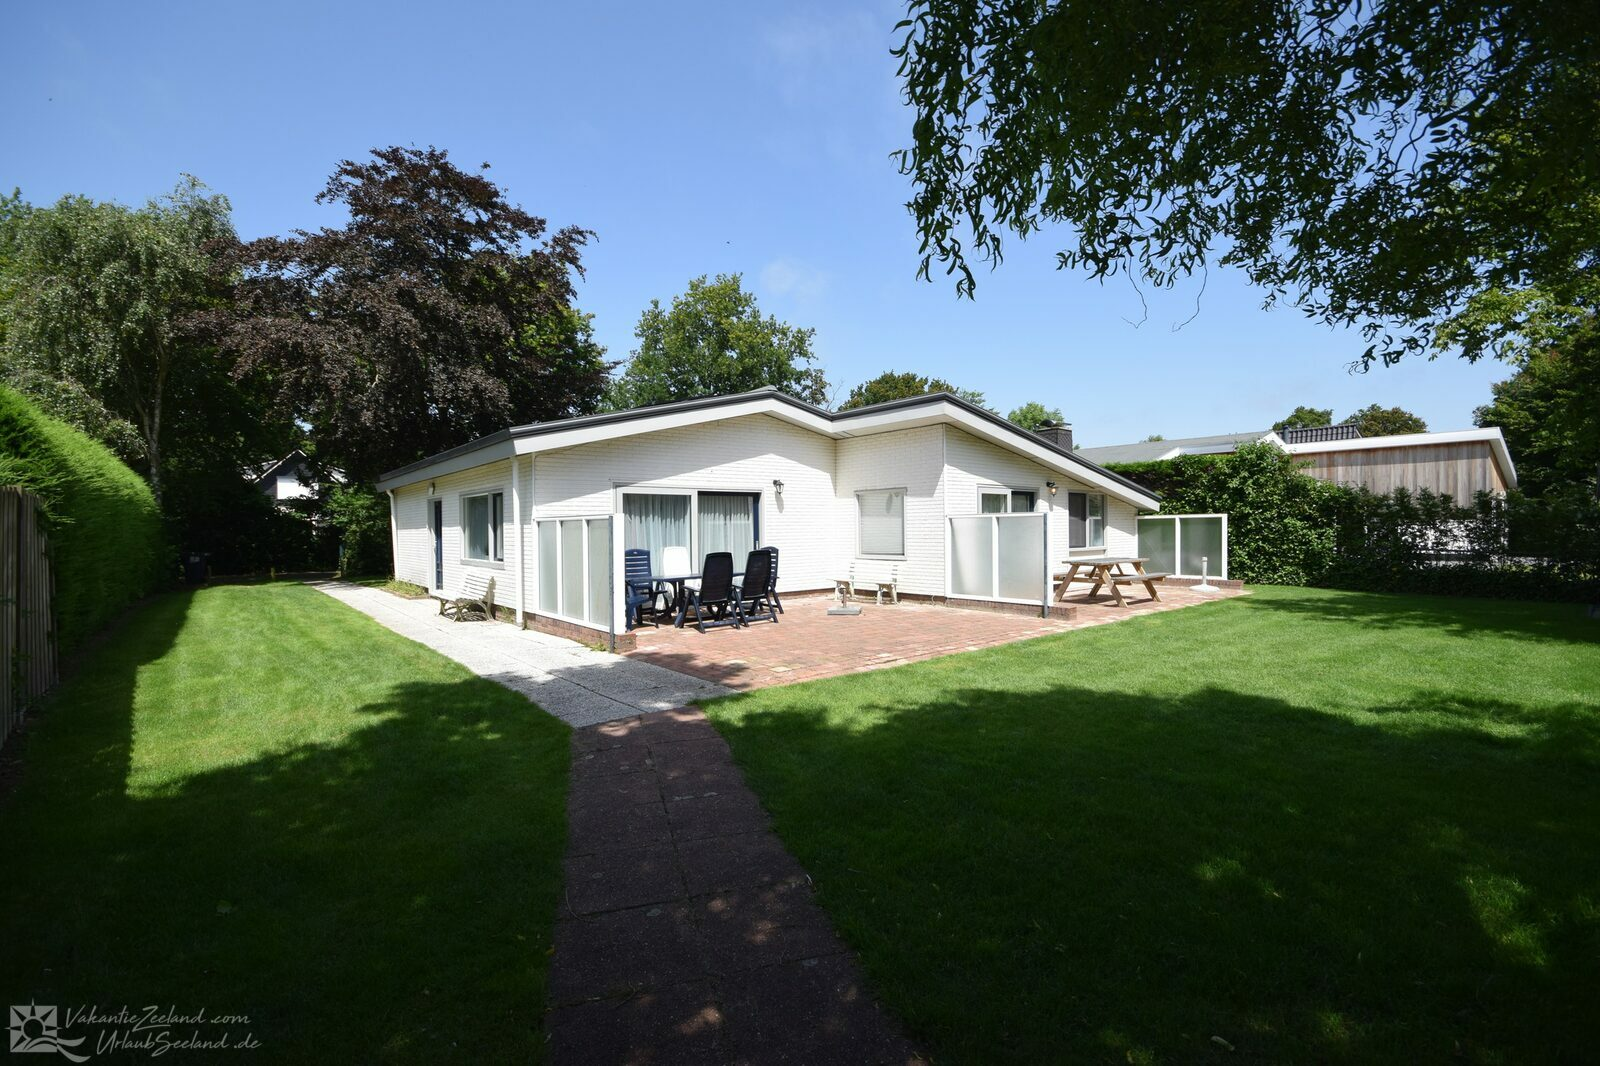 VZ1032 Holiday bungalow in Oostkapelle